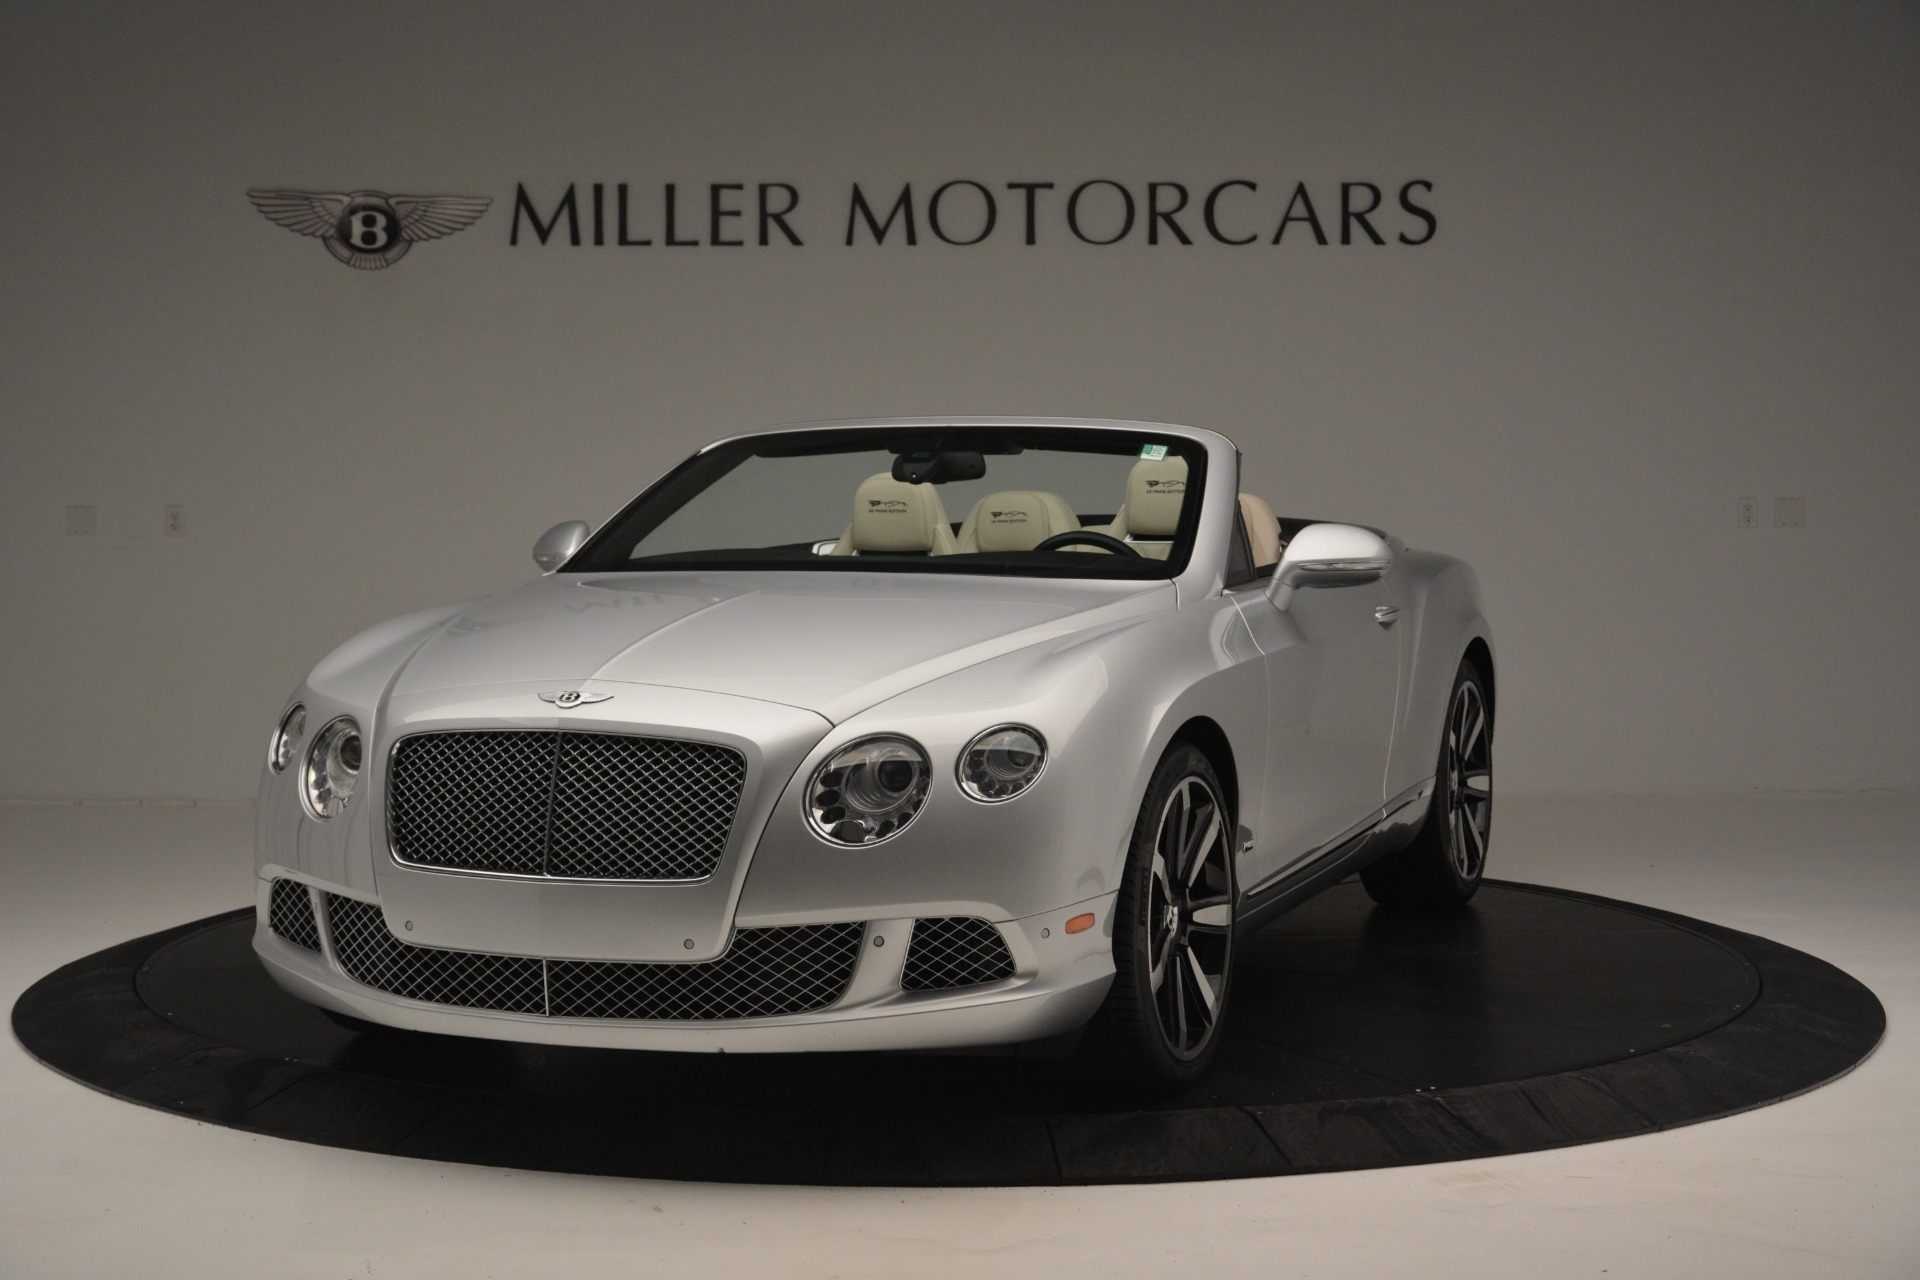 Used 2013 Bentley Continental GT W12 Le Mans Edition for sale Sold at Alfa Romeo of Greenwich in Greenwich CT 06830 1